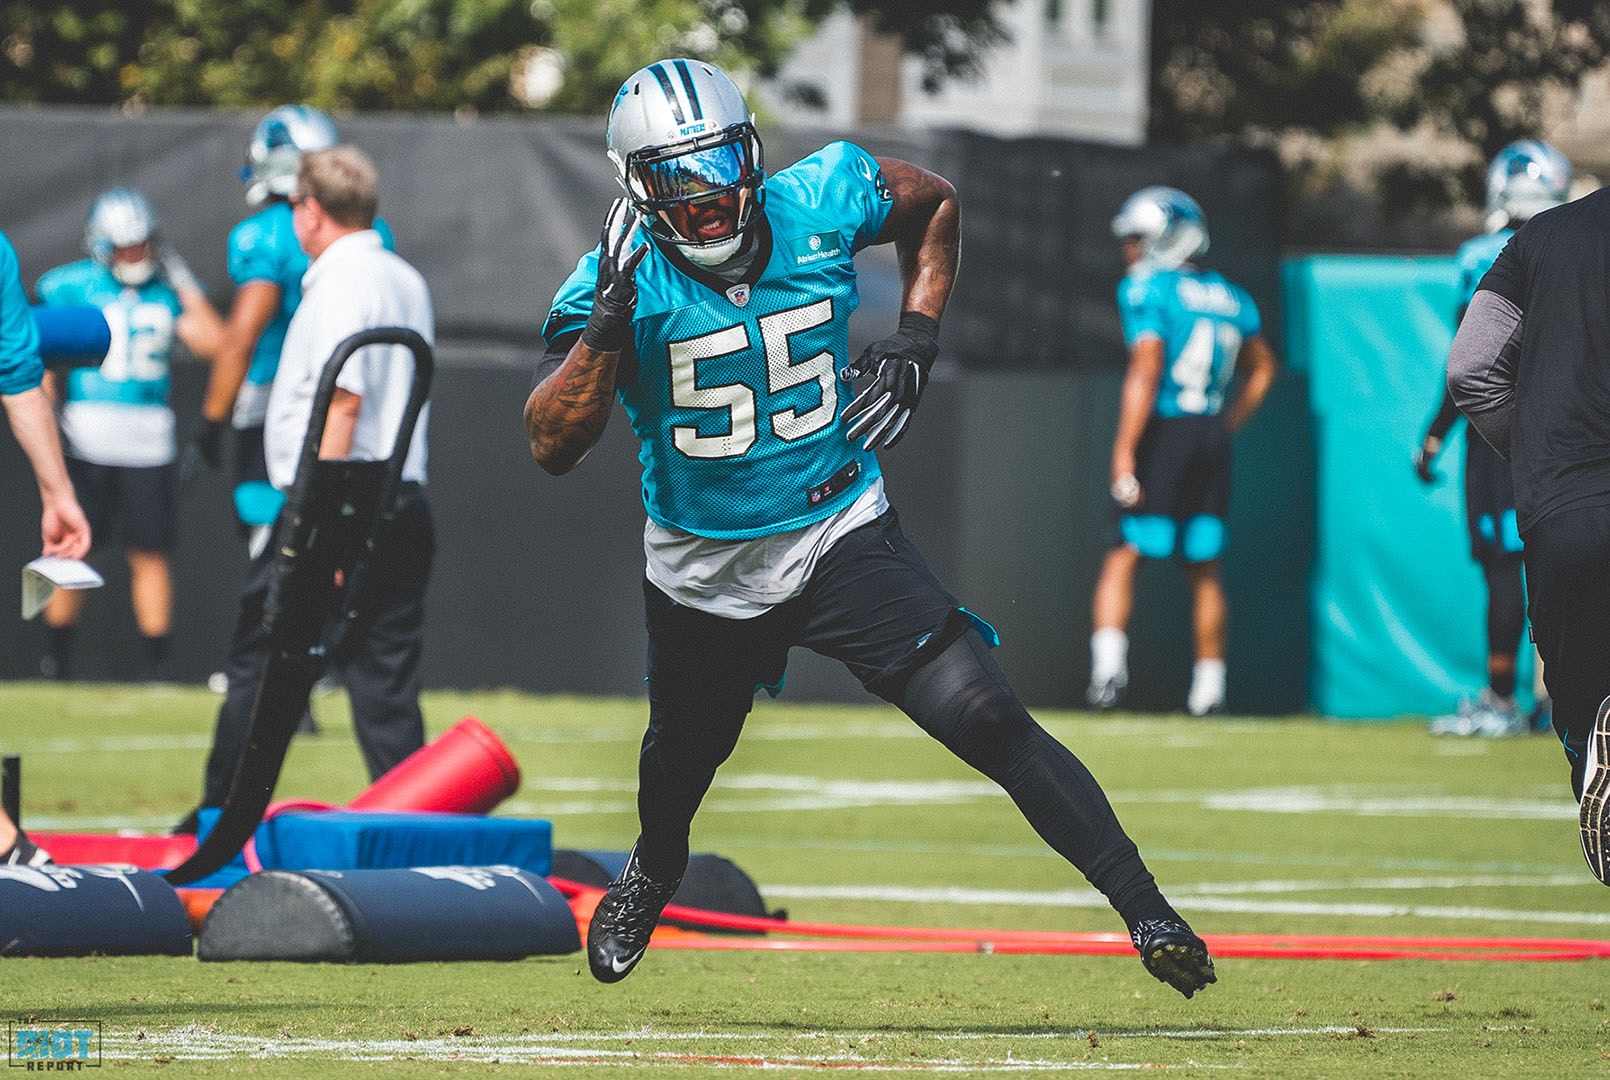 Photo Gallery: Panthers Practice | September 26, 2019